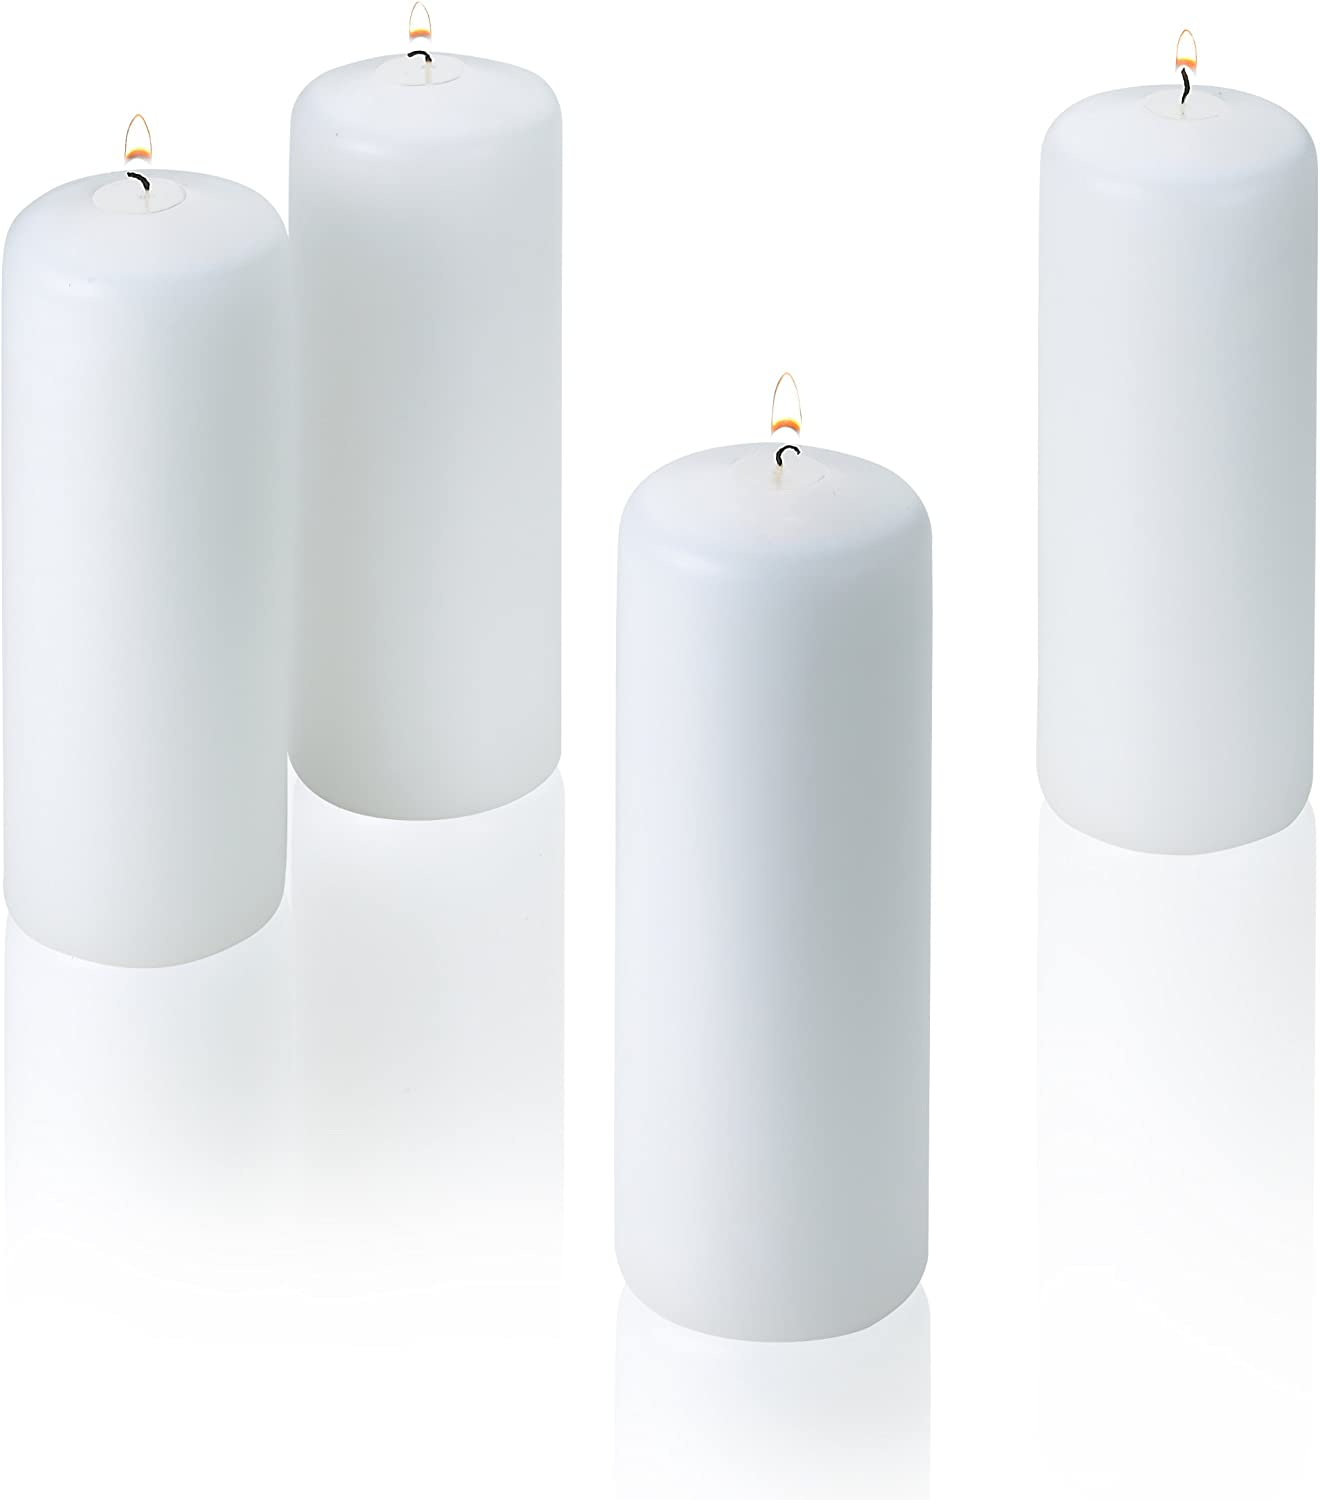 Light In The Dark White Pillar Candles - Set of 4 Unscented Candles - 6 inch Tall, 2 inch Thick - 36 Hour Clean Burn Time